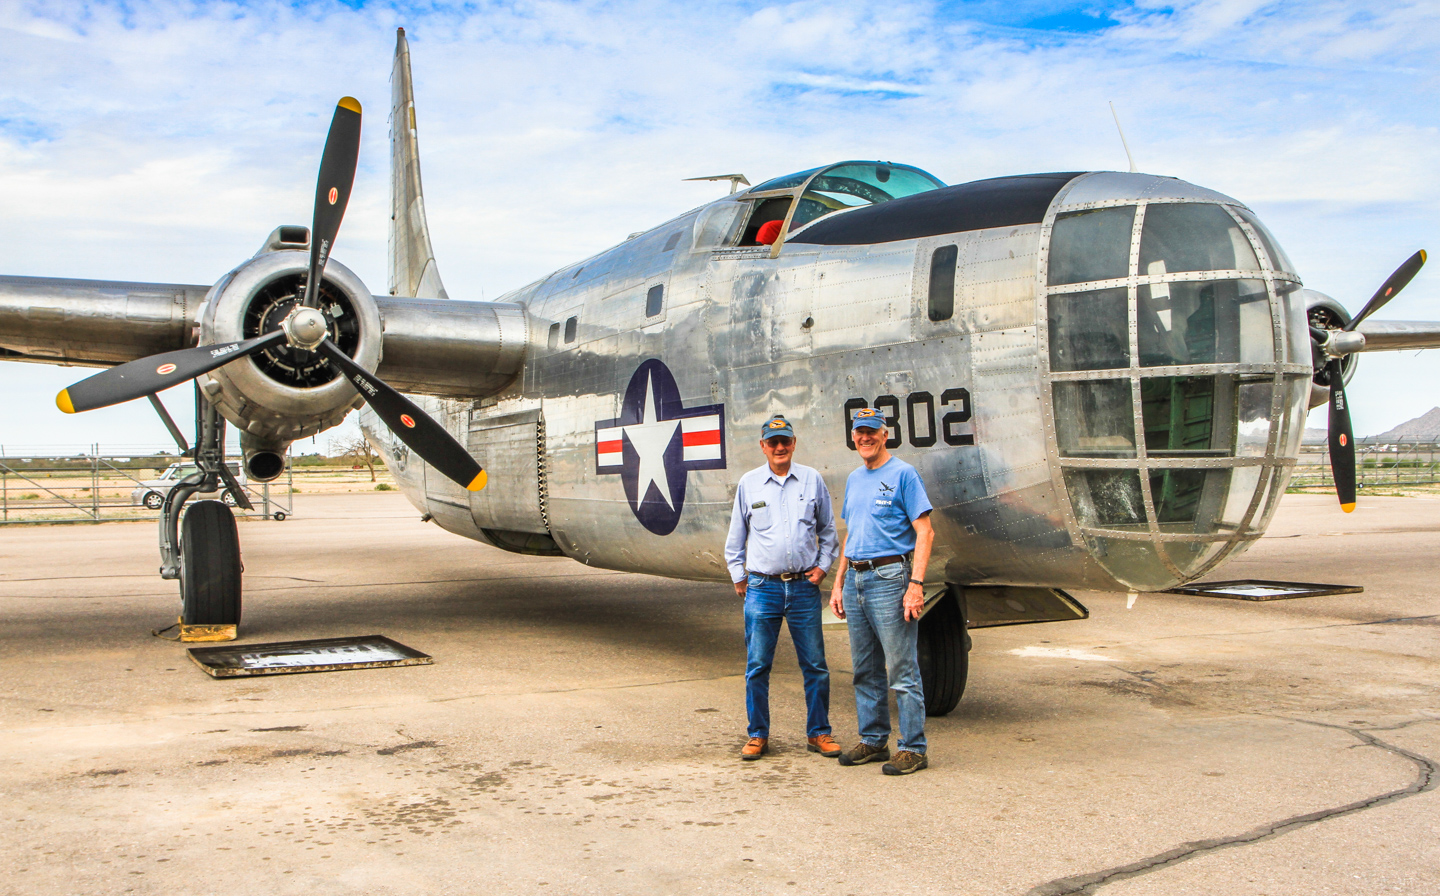 Pilot Woody Grantham (left) and Copilot Bruce Brockhagen (right). (Photo by Zdenek Kaspar)